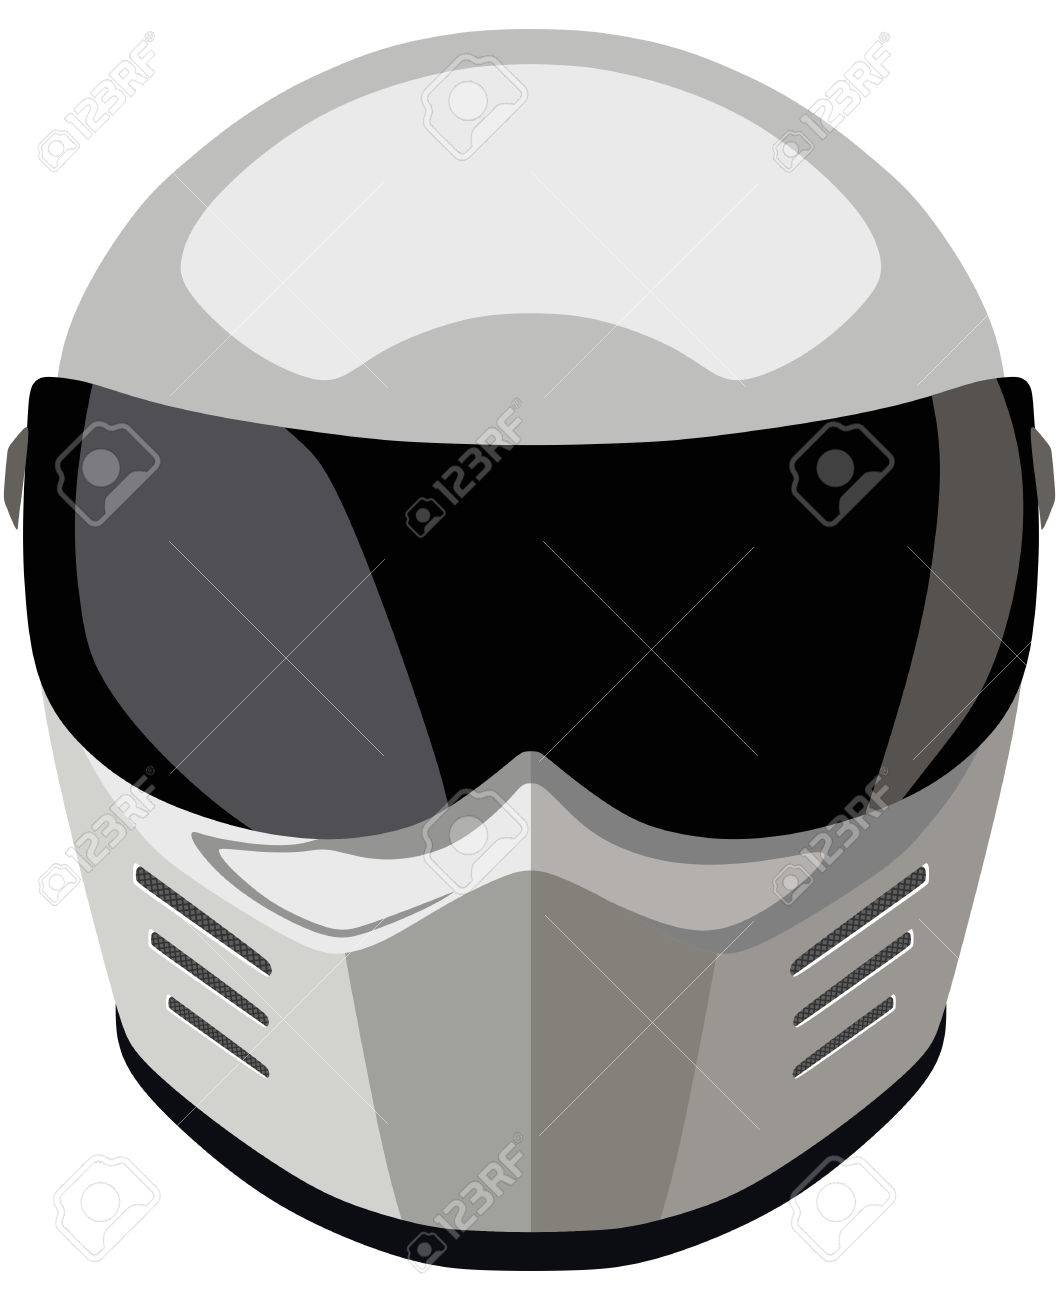 White motorcycle helmet on a white background.